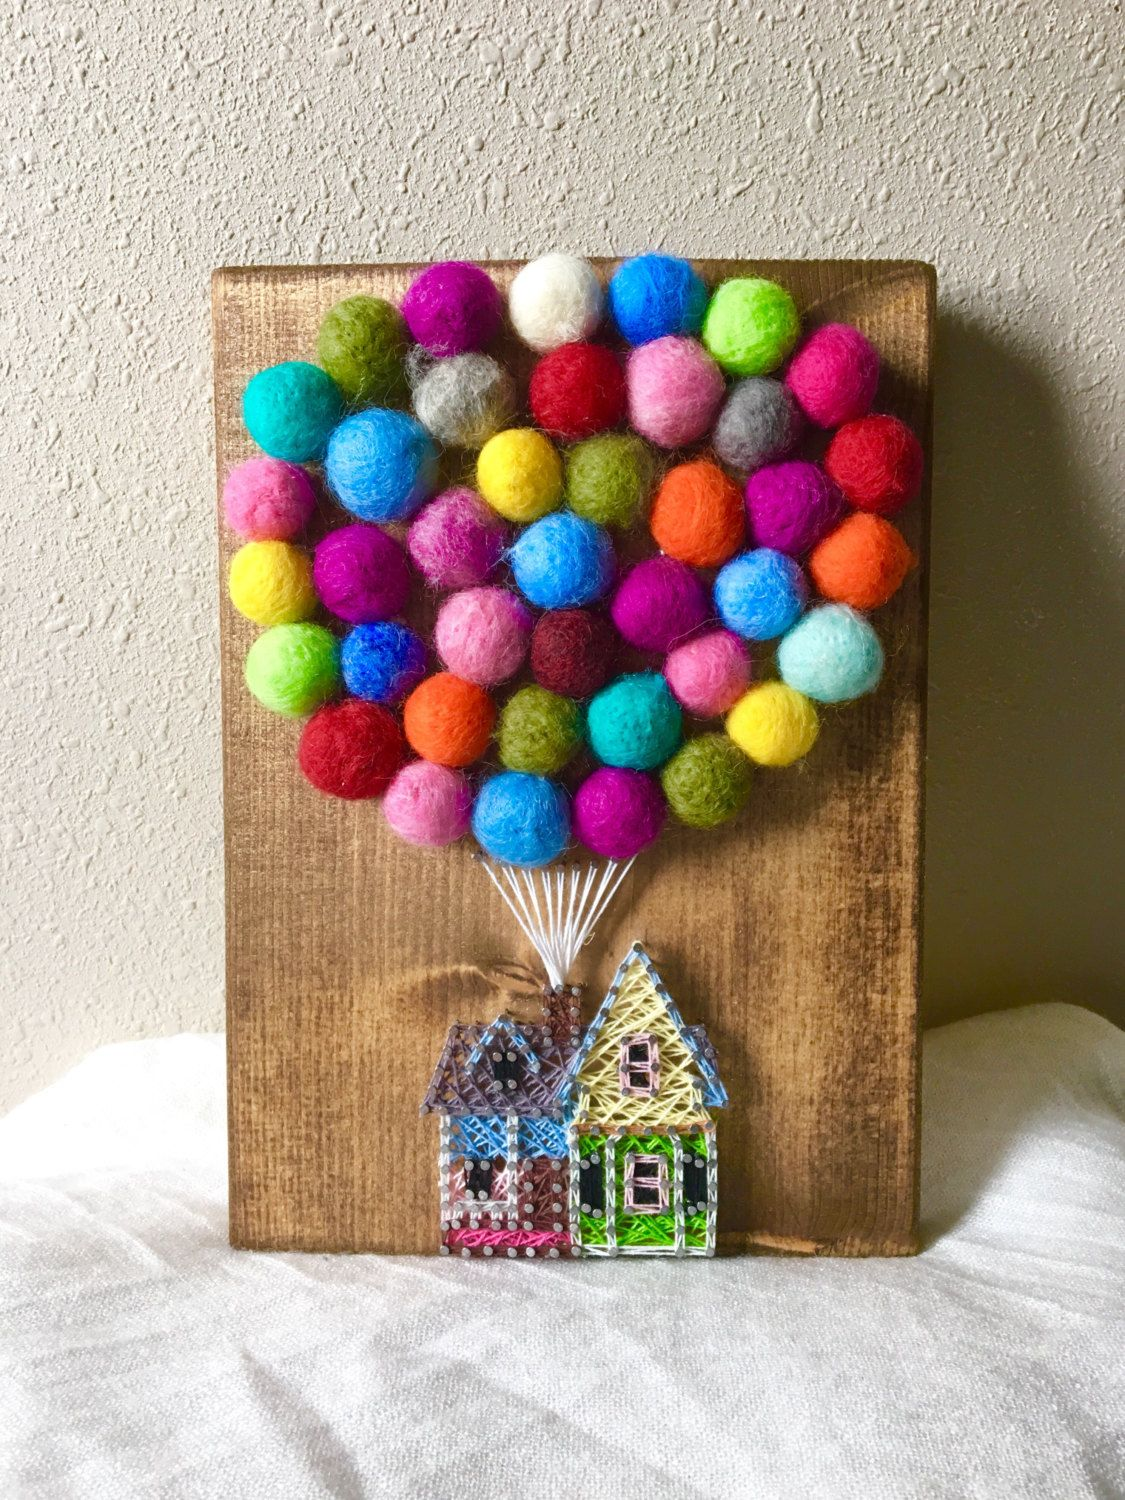 How To Do String Art 40 Insanely Creative String Art Projects Diy String Art Letter